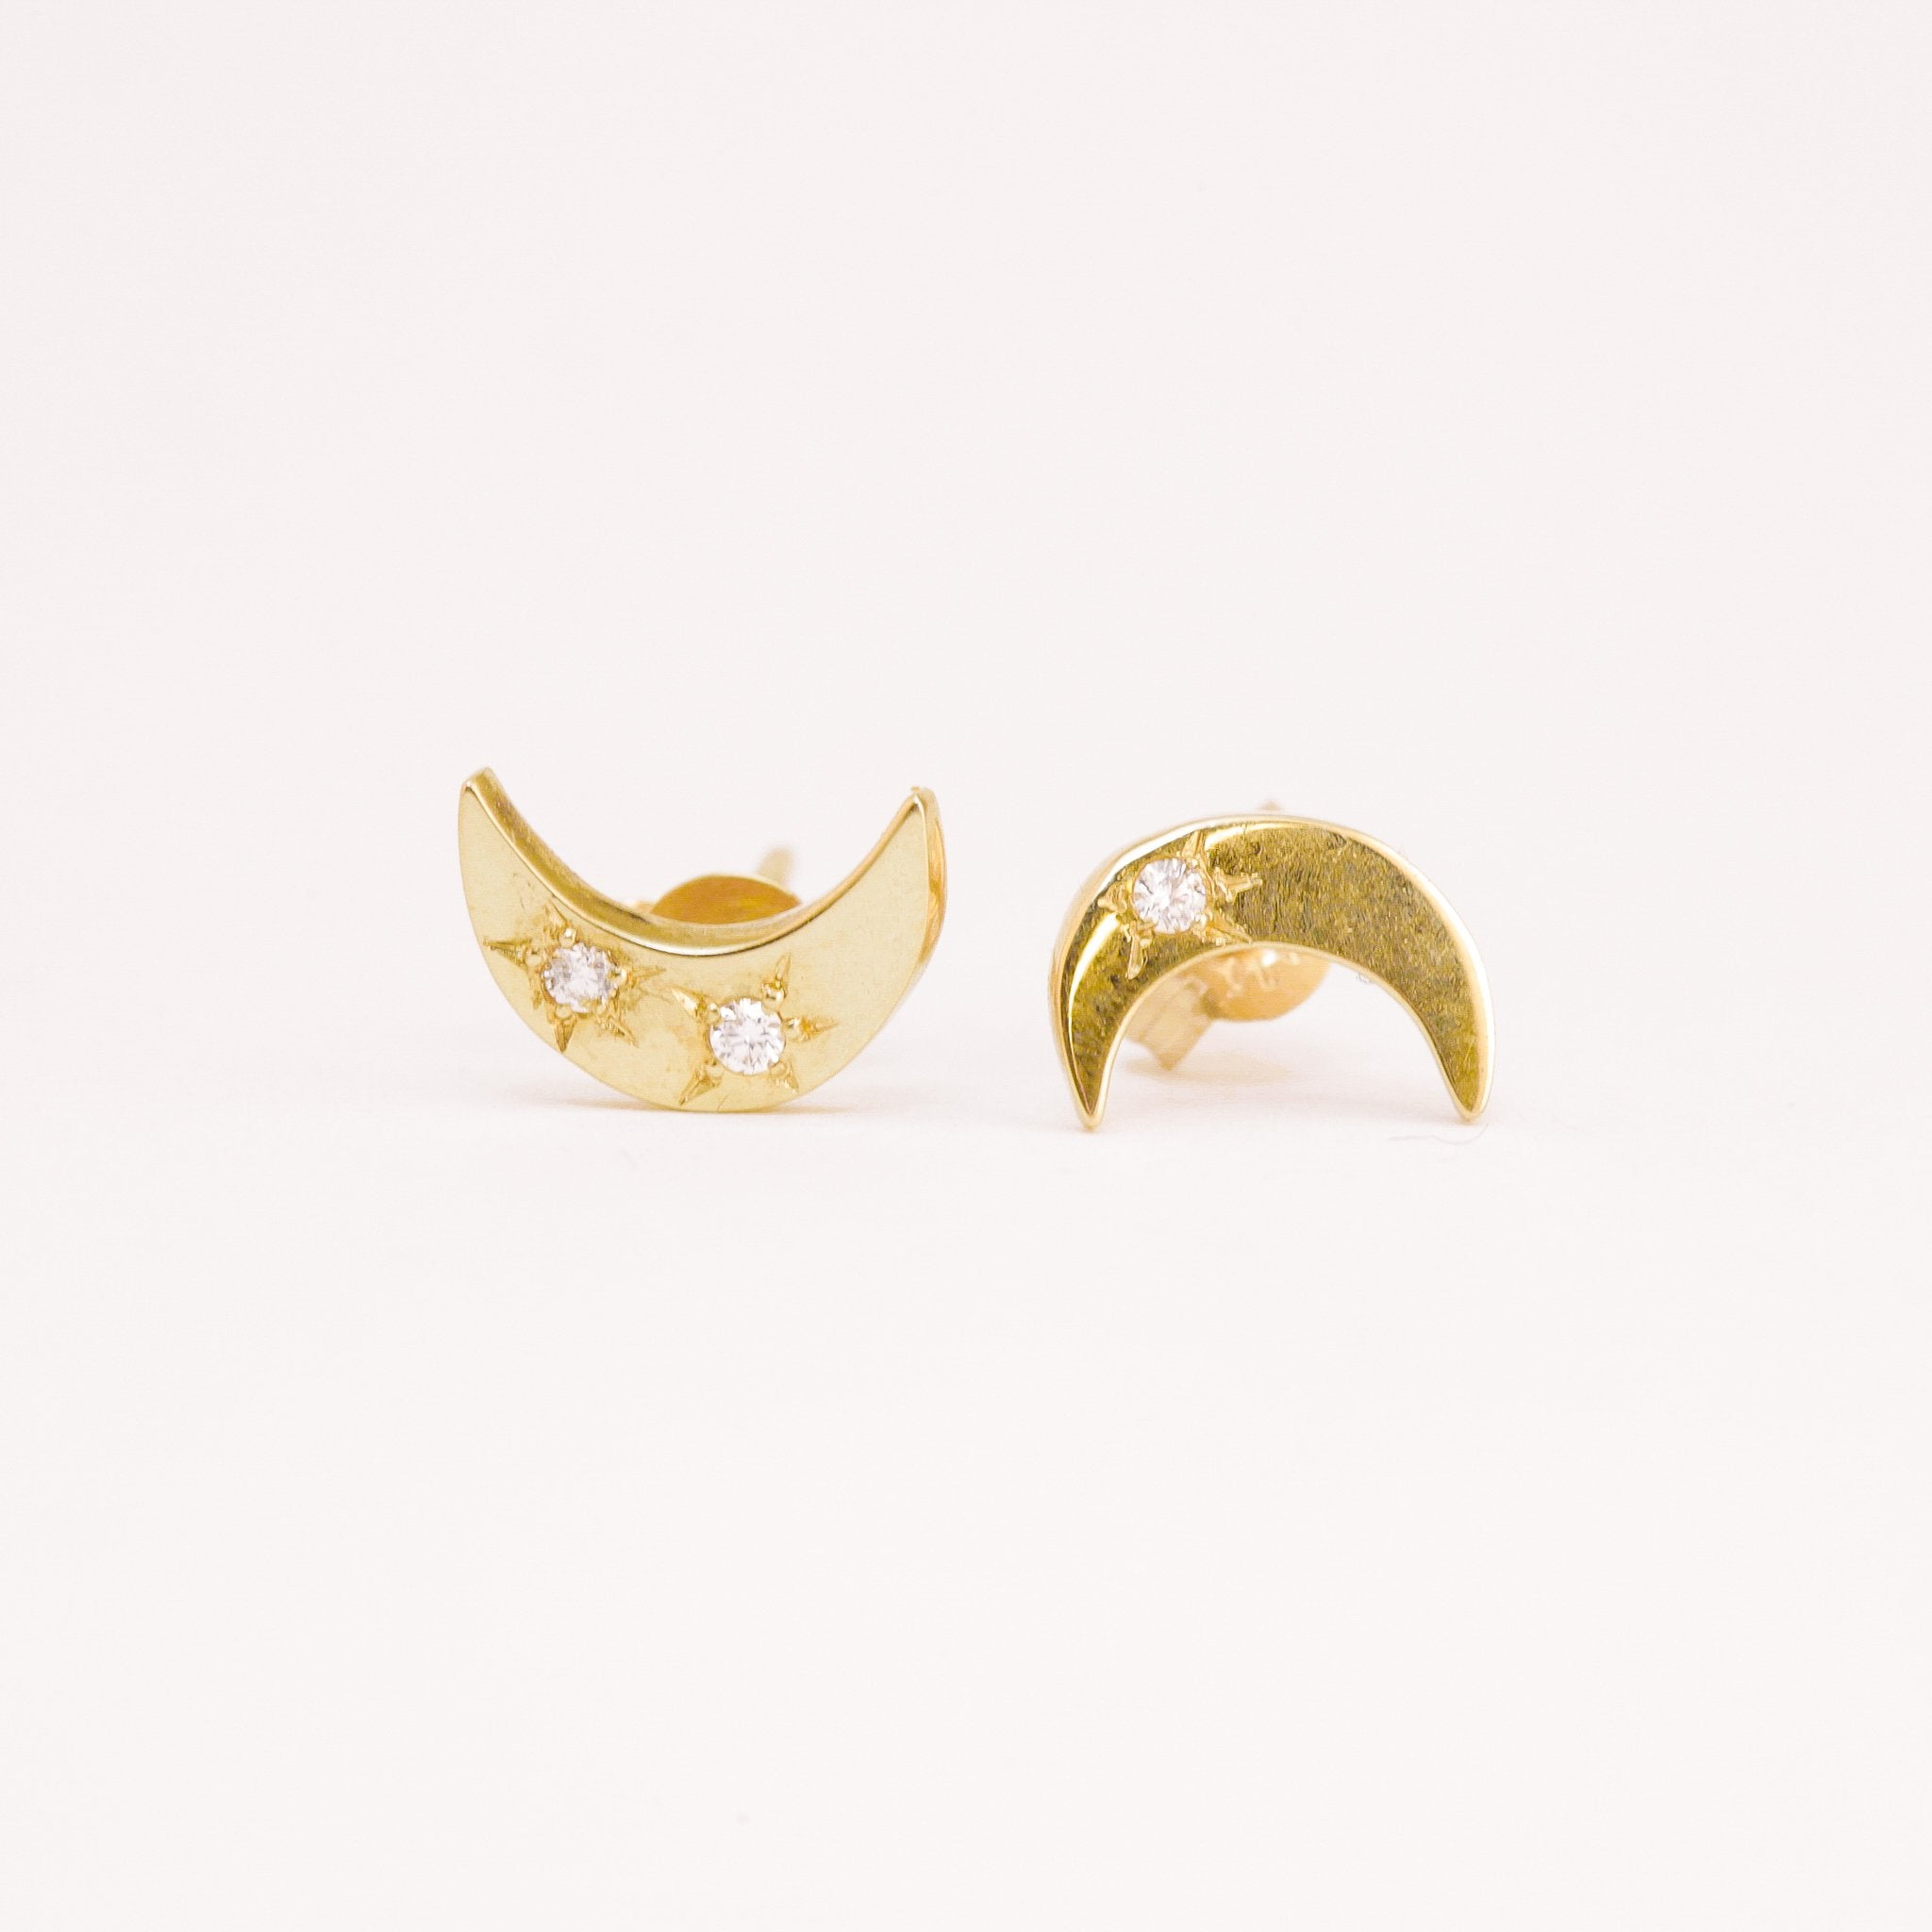 Handmade 9ct Yellow Gold Moon Studs with 3 Diamonds, Hand Made Jewellery, Made in Melbourne